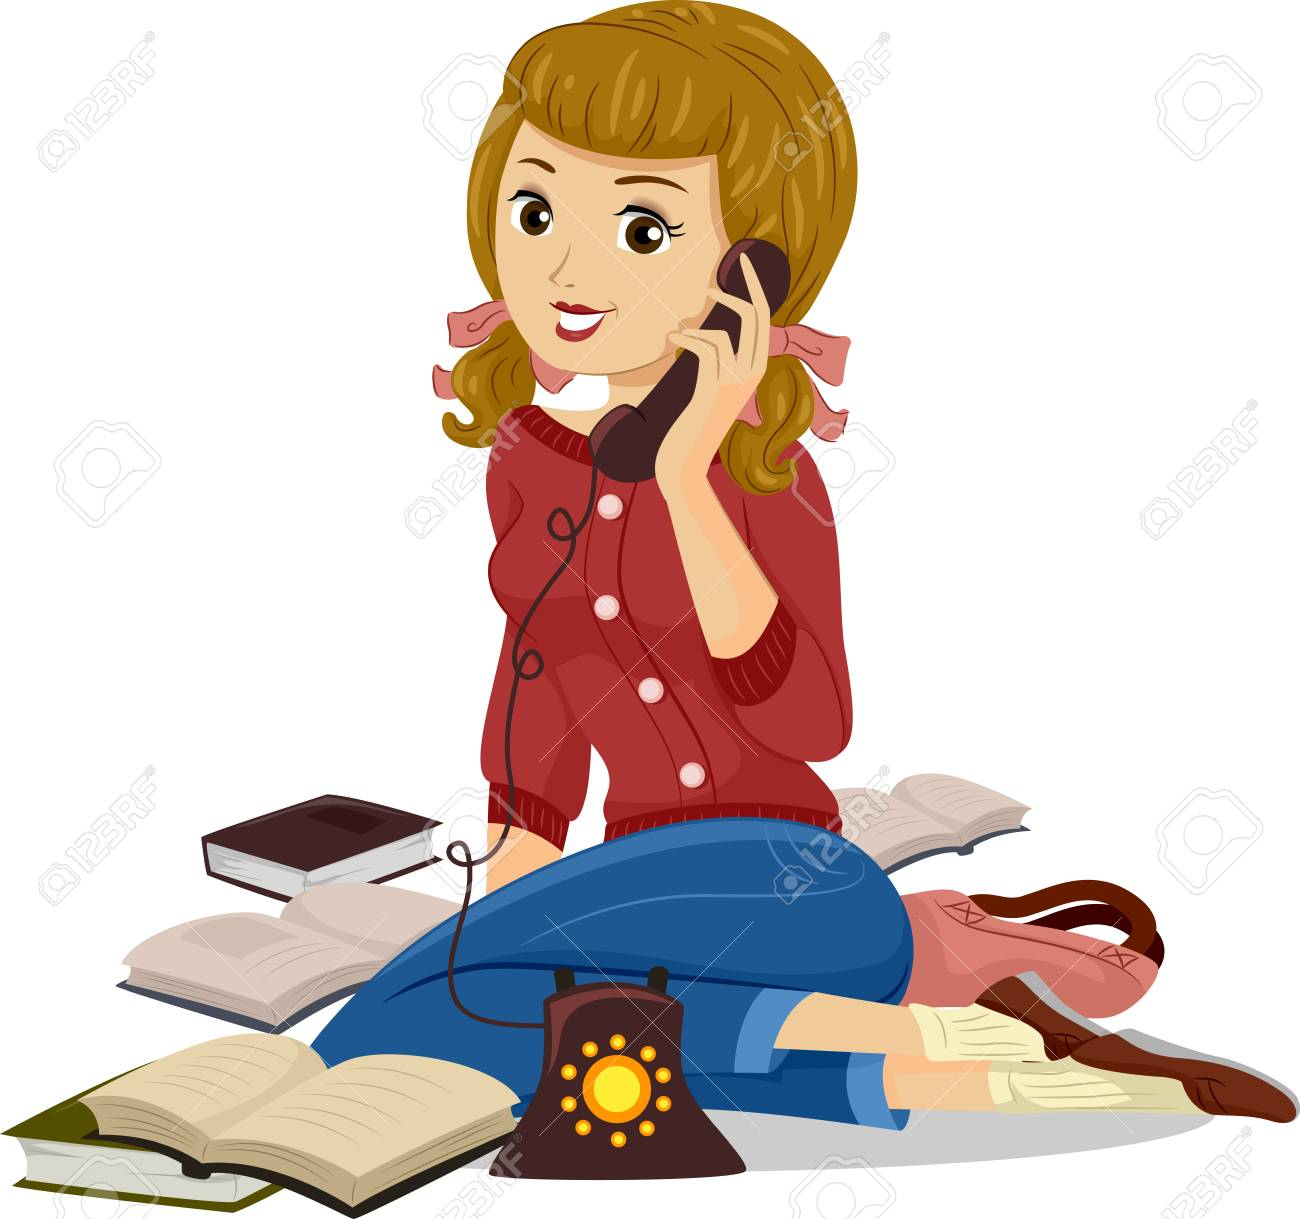 Girl Studying On the Phone Clip Art